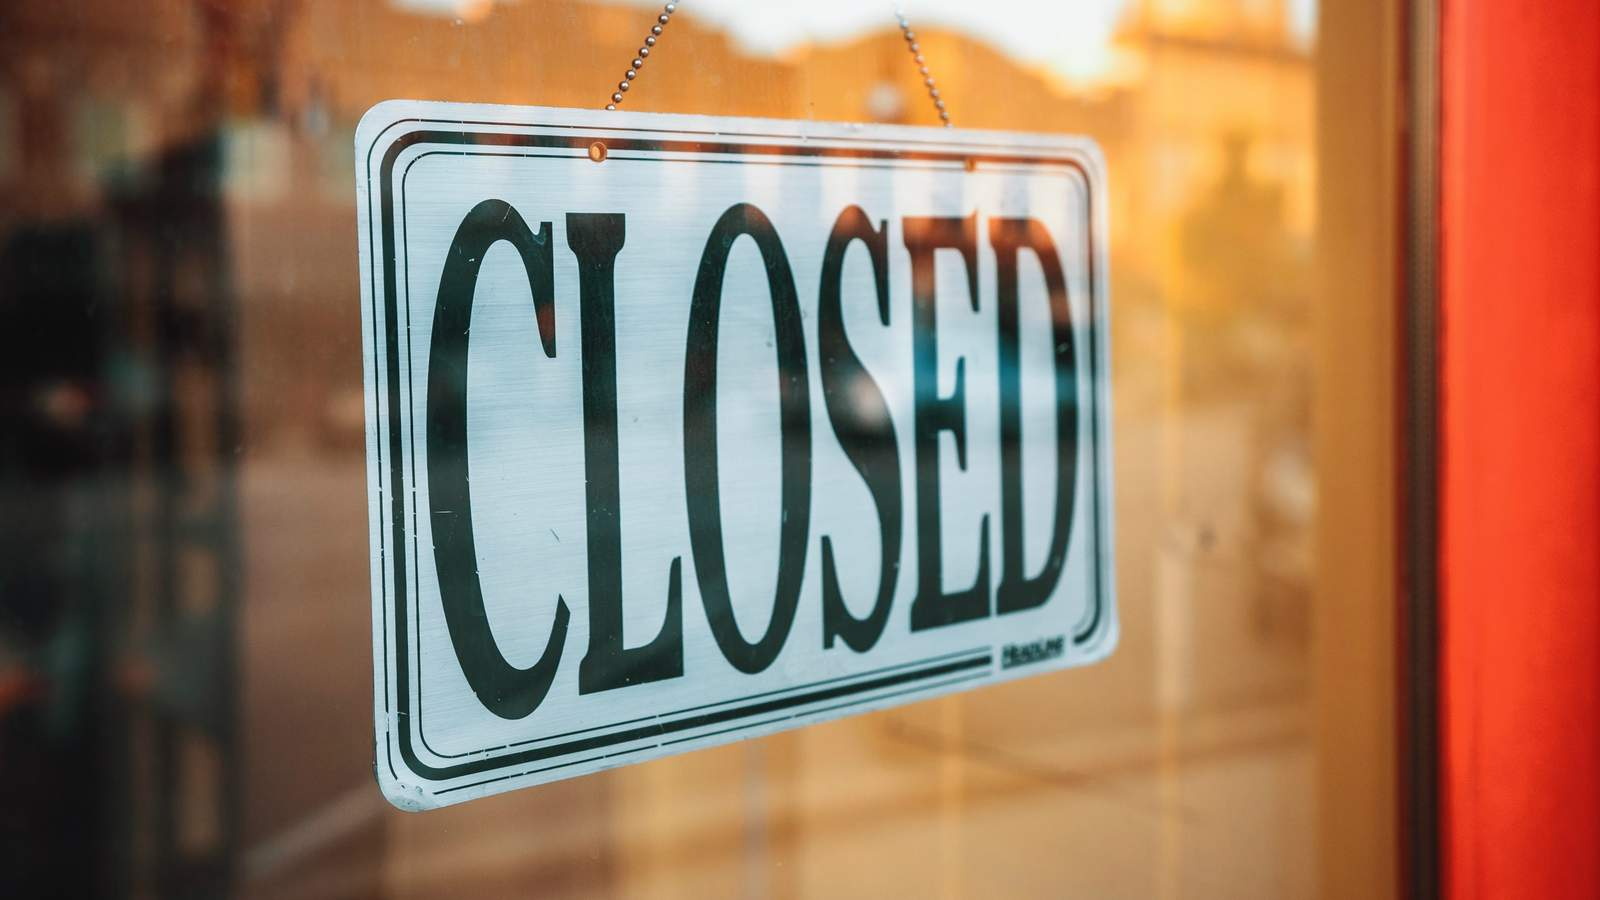 Nonessential businesses in Florida told to close Friday